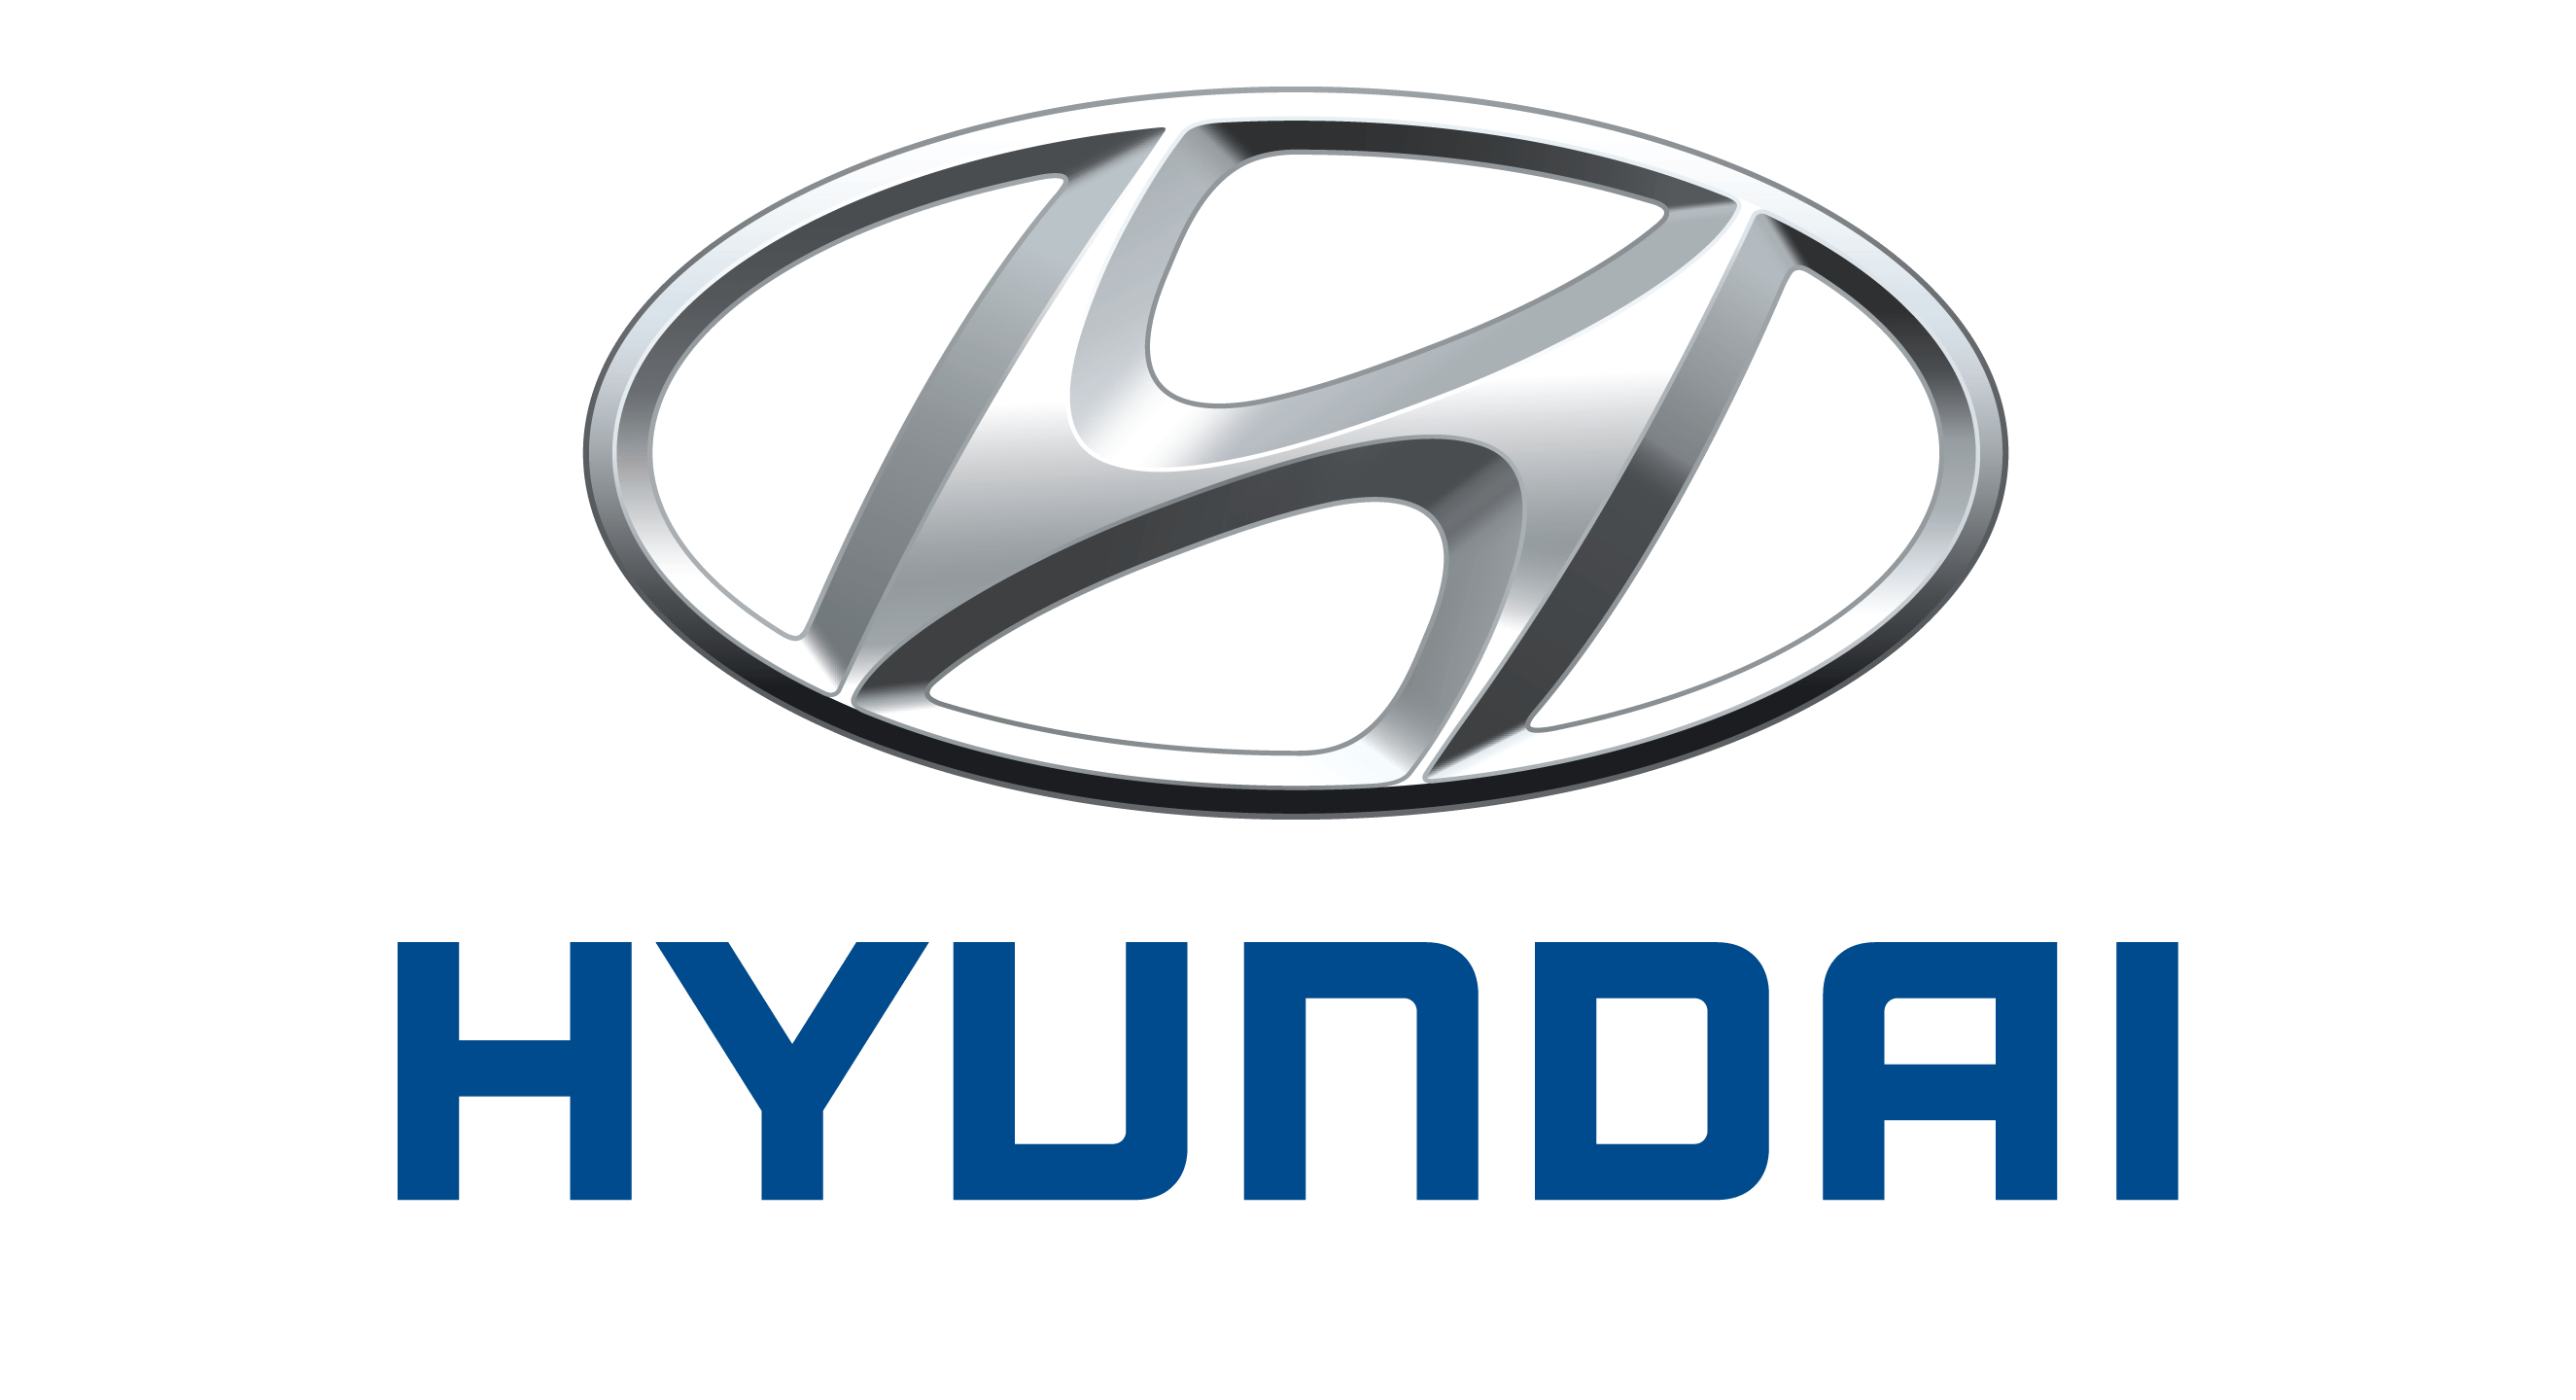 Hyundai - take a car loan from carloans.credit